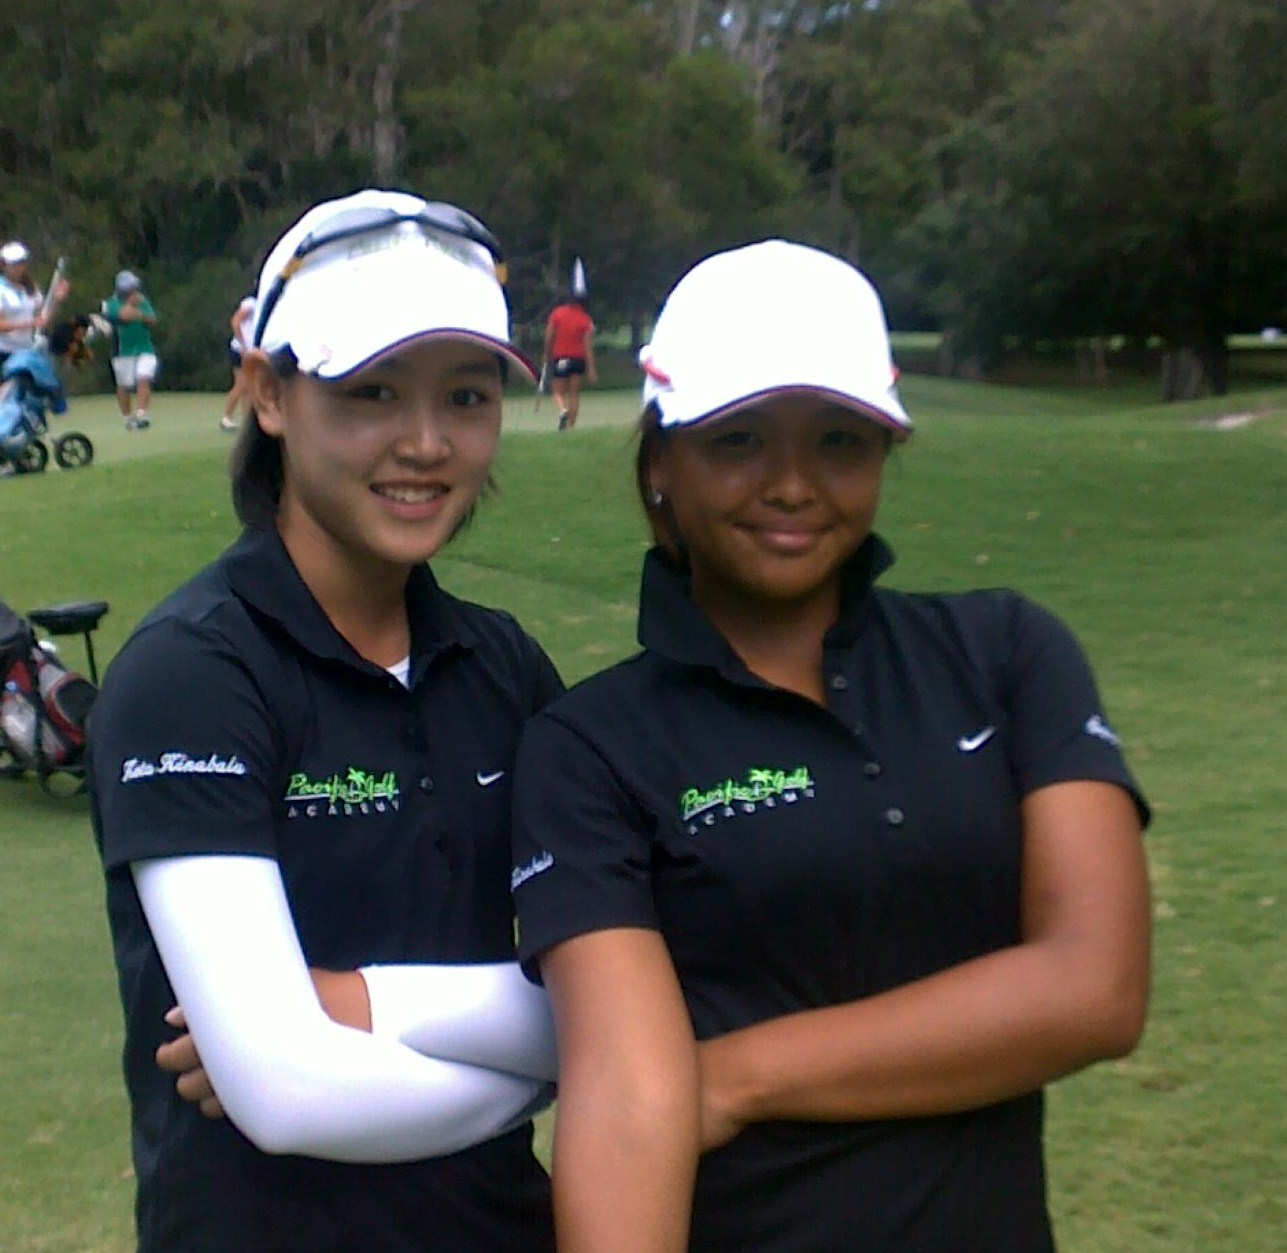 https://pacificgolfacademy.webs.com/photos/Academy-Students/GNJM%20Celeste%20&%20Kelly%20Pose.jpg